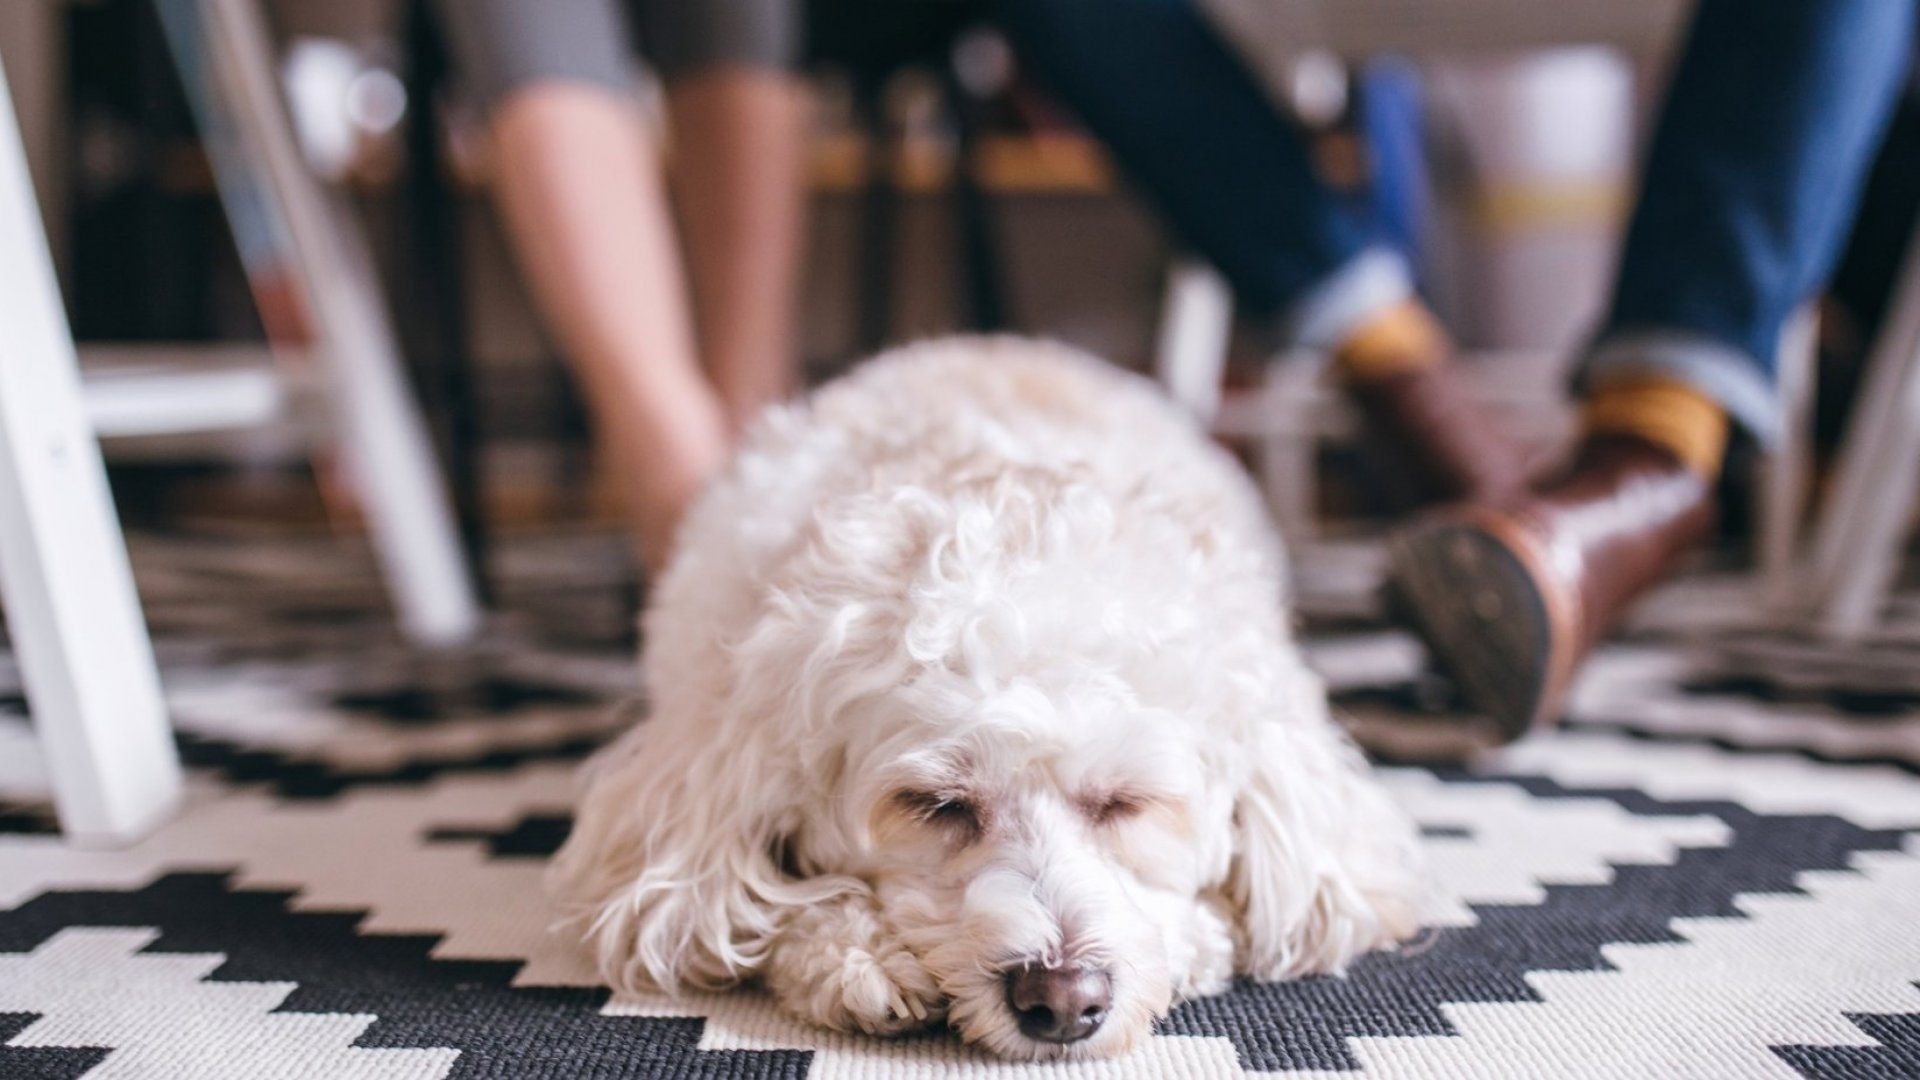 The Scientific Case for Dog-Friendly Offices